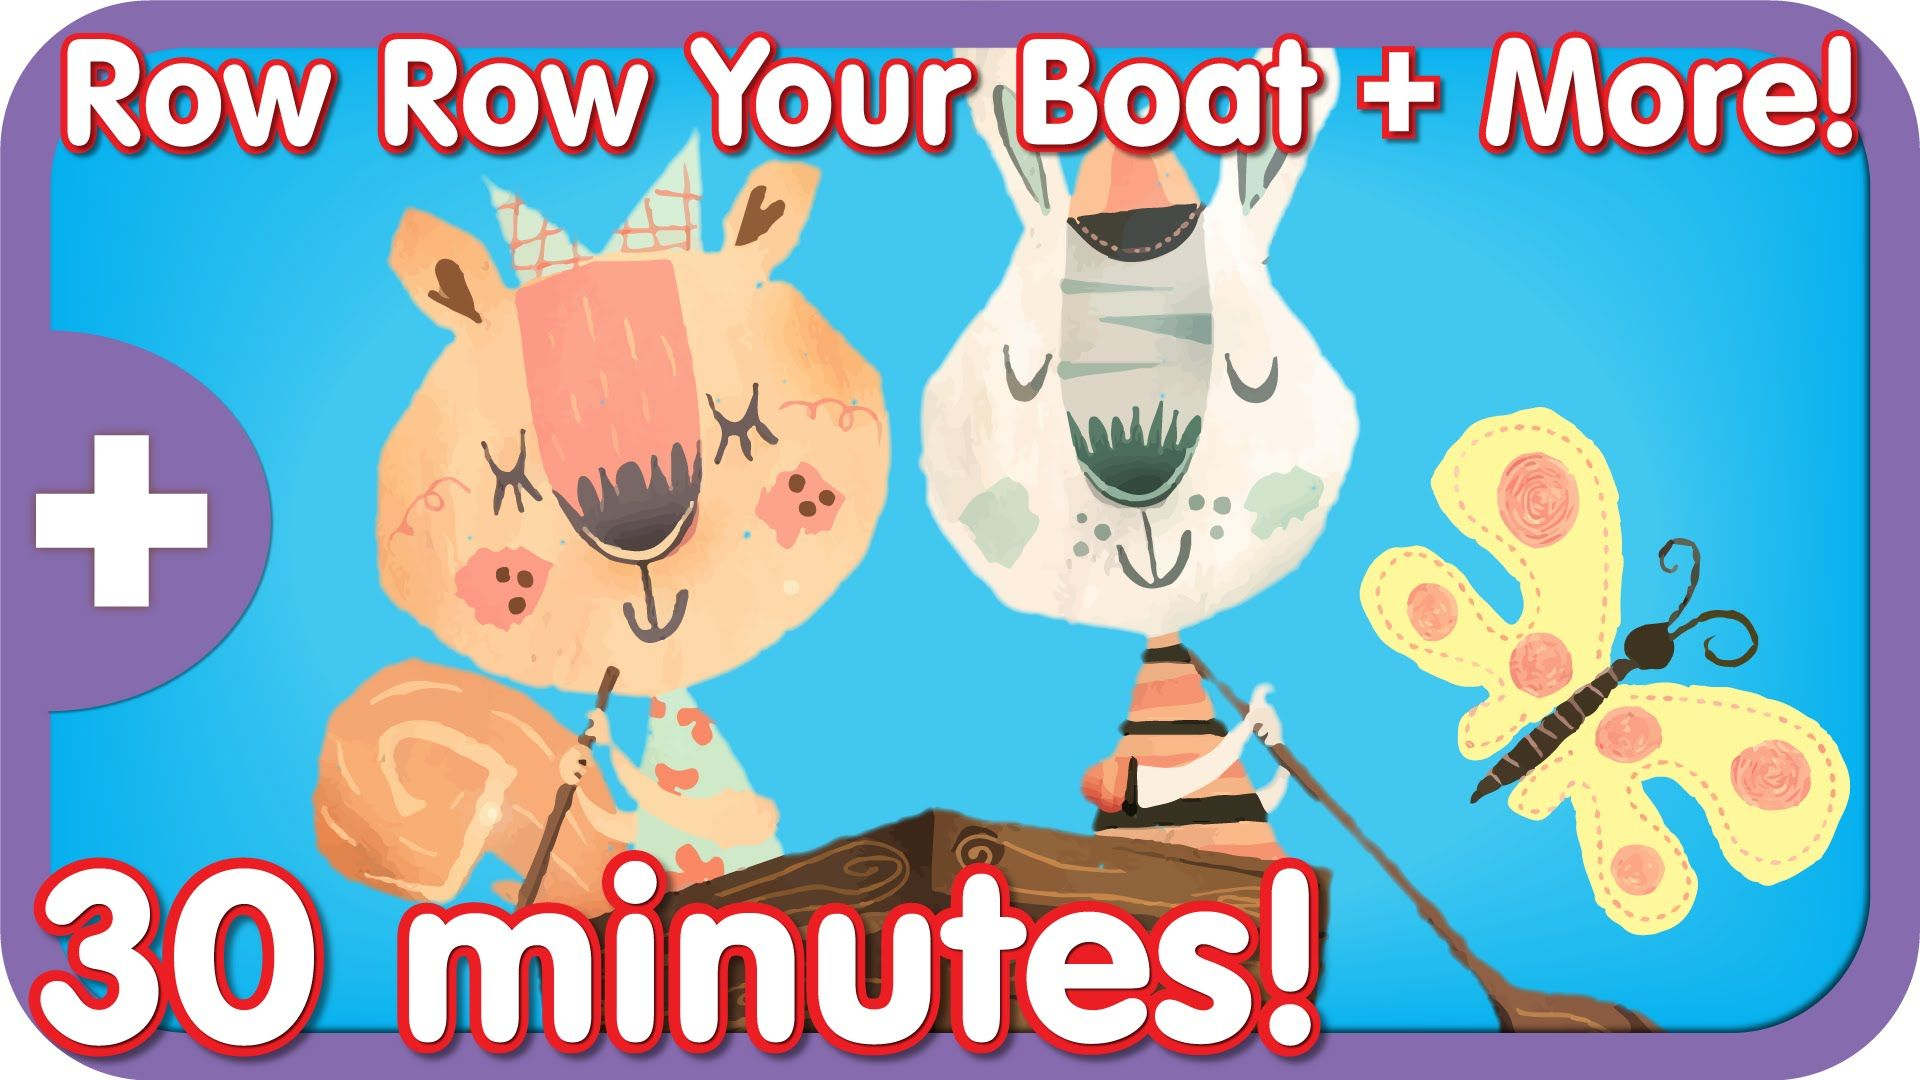 Row Row Row Your Boat More Songs For Kids 30 Minutes Preschool Songs Kids Songs Classic Kids